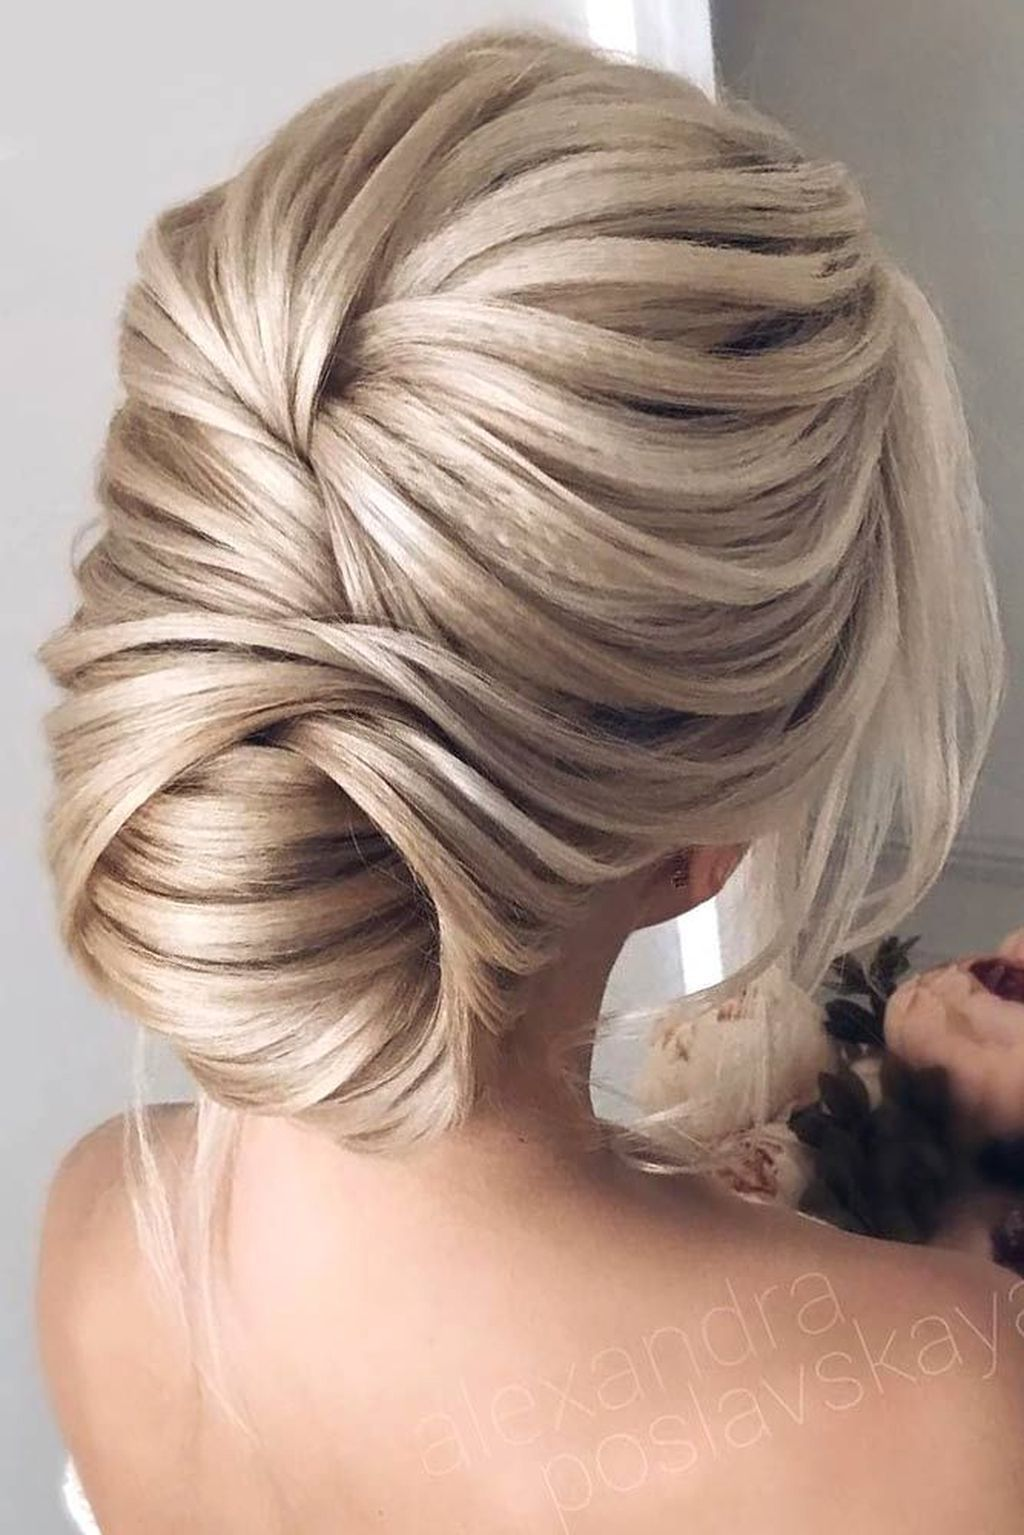 36 The Best Modern Wedding Hairstyles Ideas For Long Hair Hairdo For Long Hair Flapper Hair Hair Styles